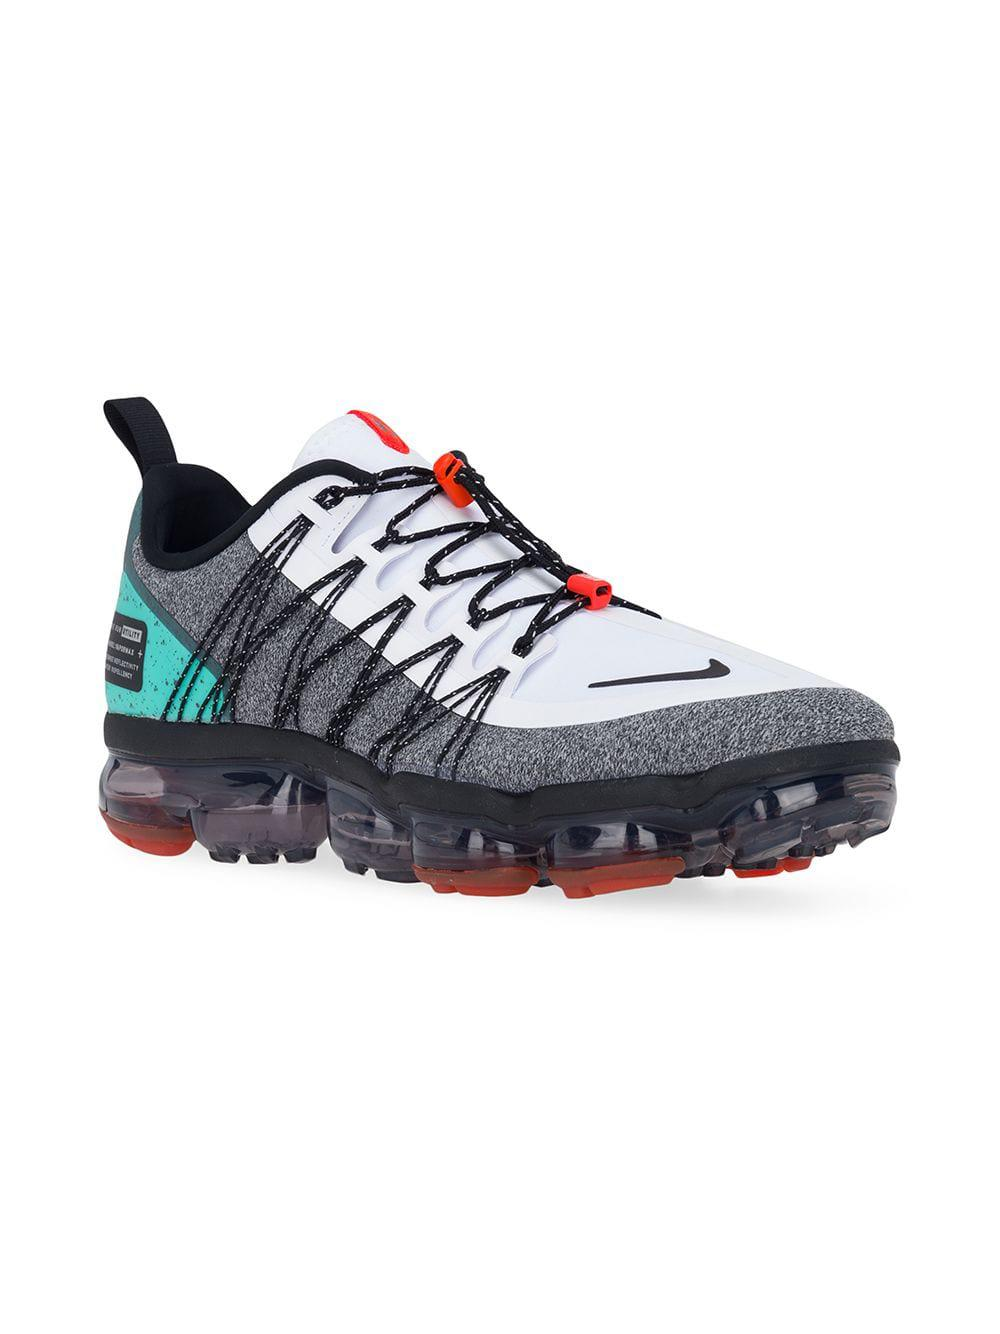 06bf5e3f3e Lyst - Nike Air Vapormax Run Utility Sneakers in White for Men - Save 50%